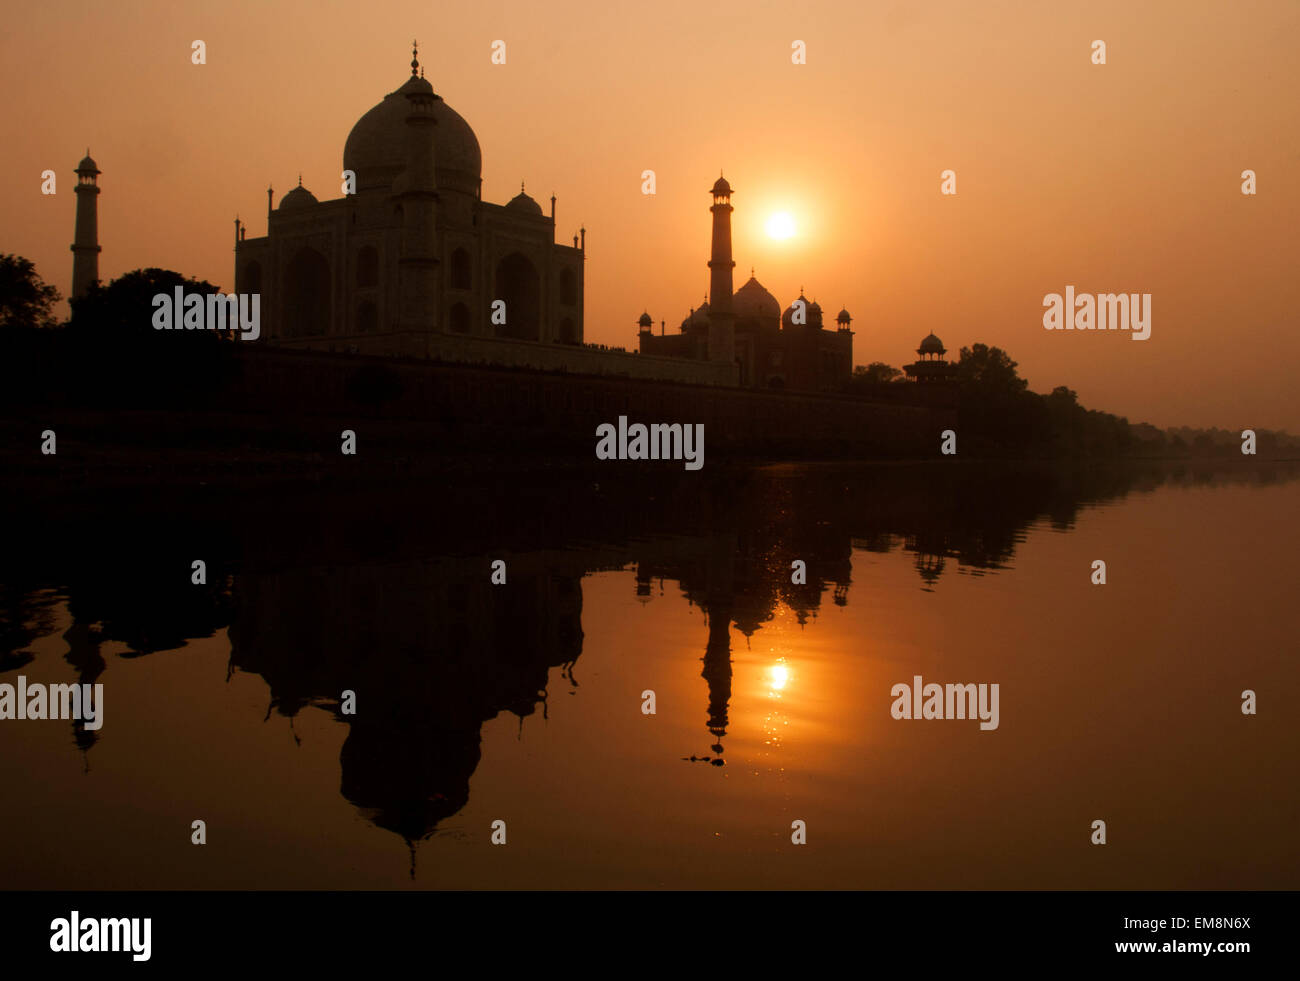 Sunset over the Taj Mahal taken from the Yamuna River in Agra, India Stock Photo